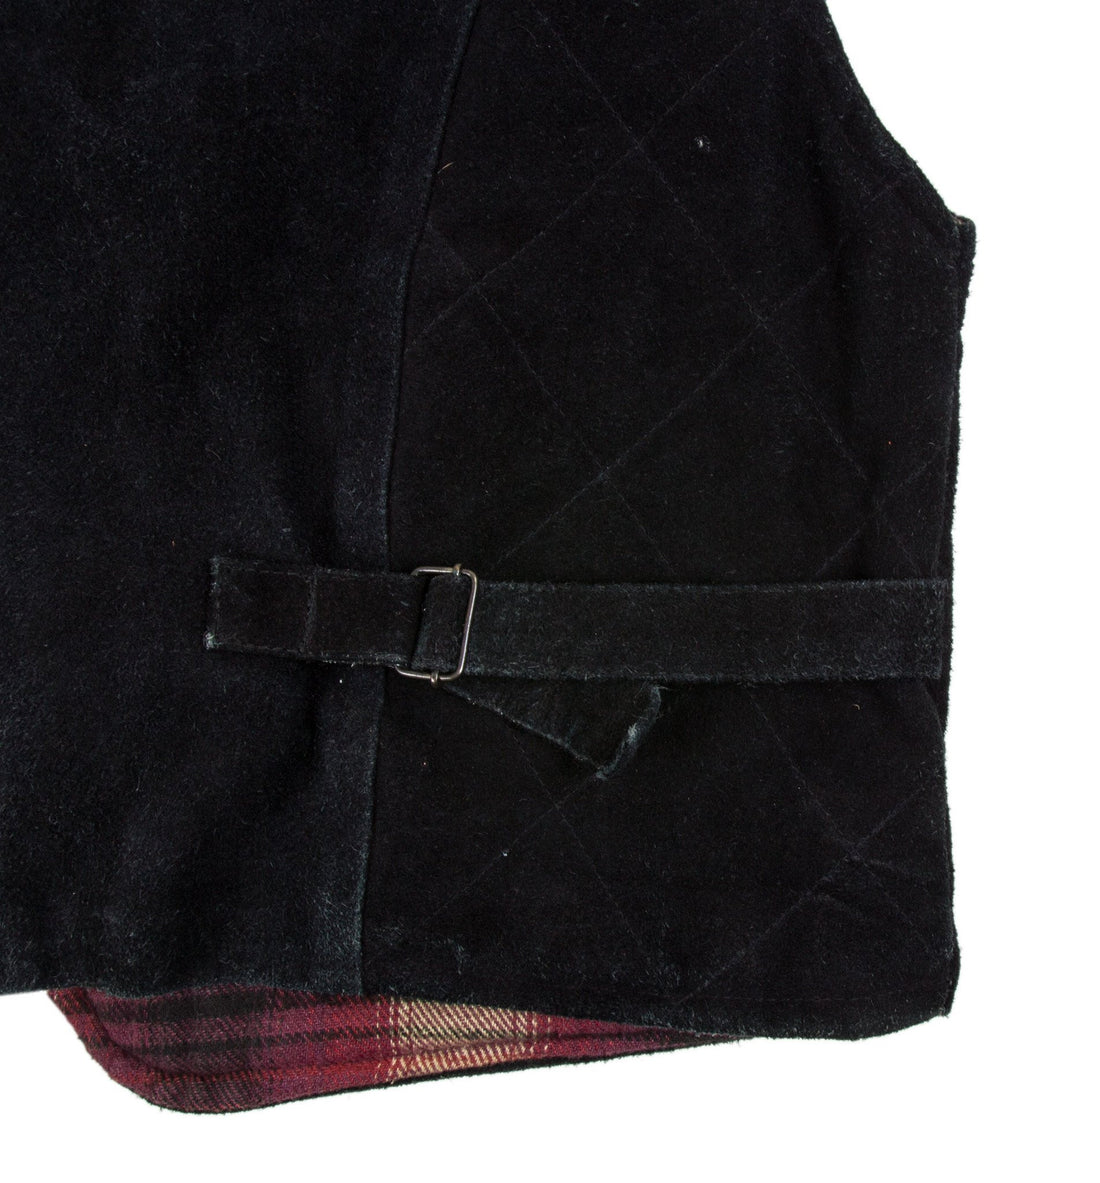 Vintage Men's Suede Patchwork Vest- M - Vintage: Men's - Iron and Resin